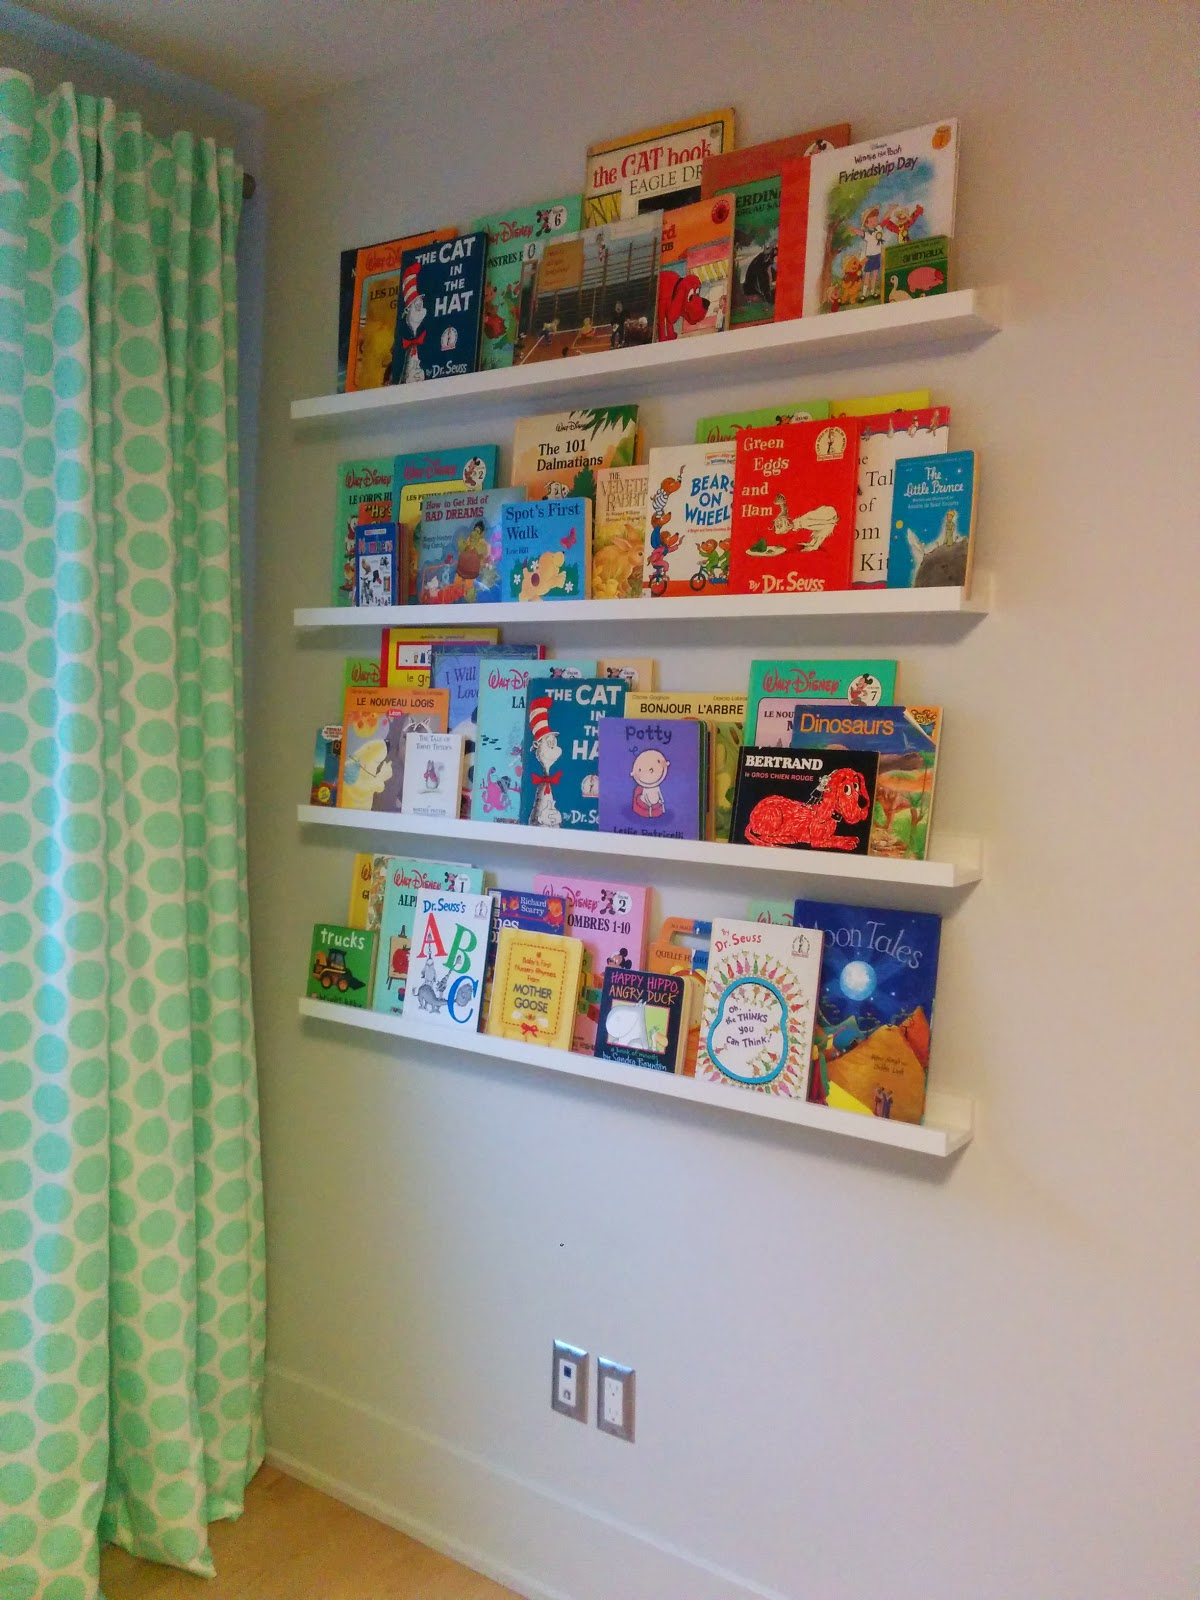 Ikea Ribba picture rails with children's books